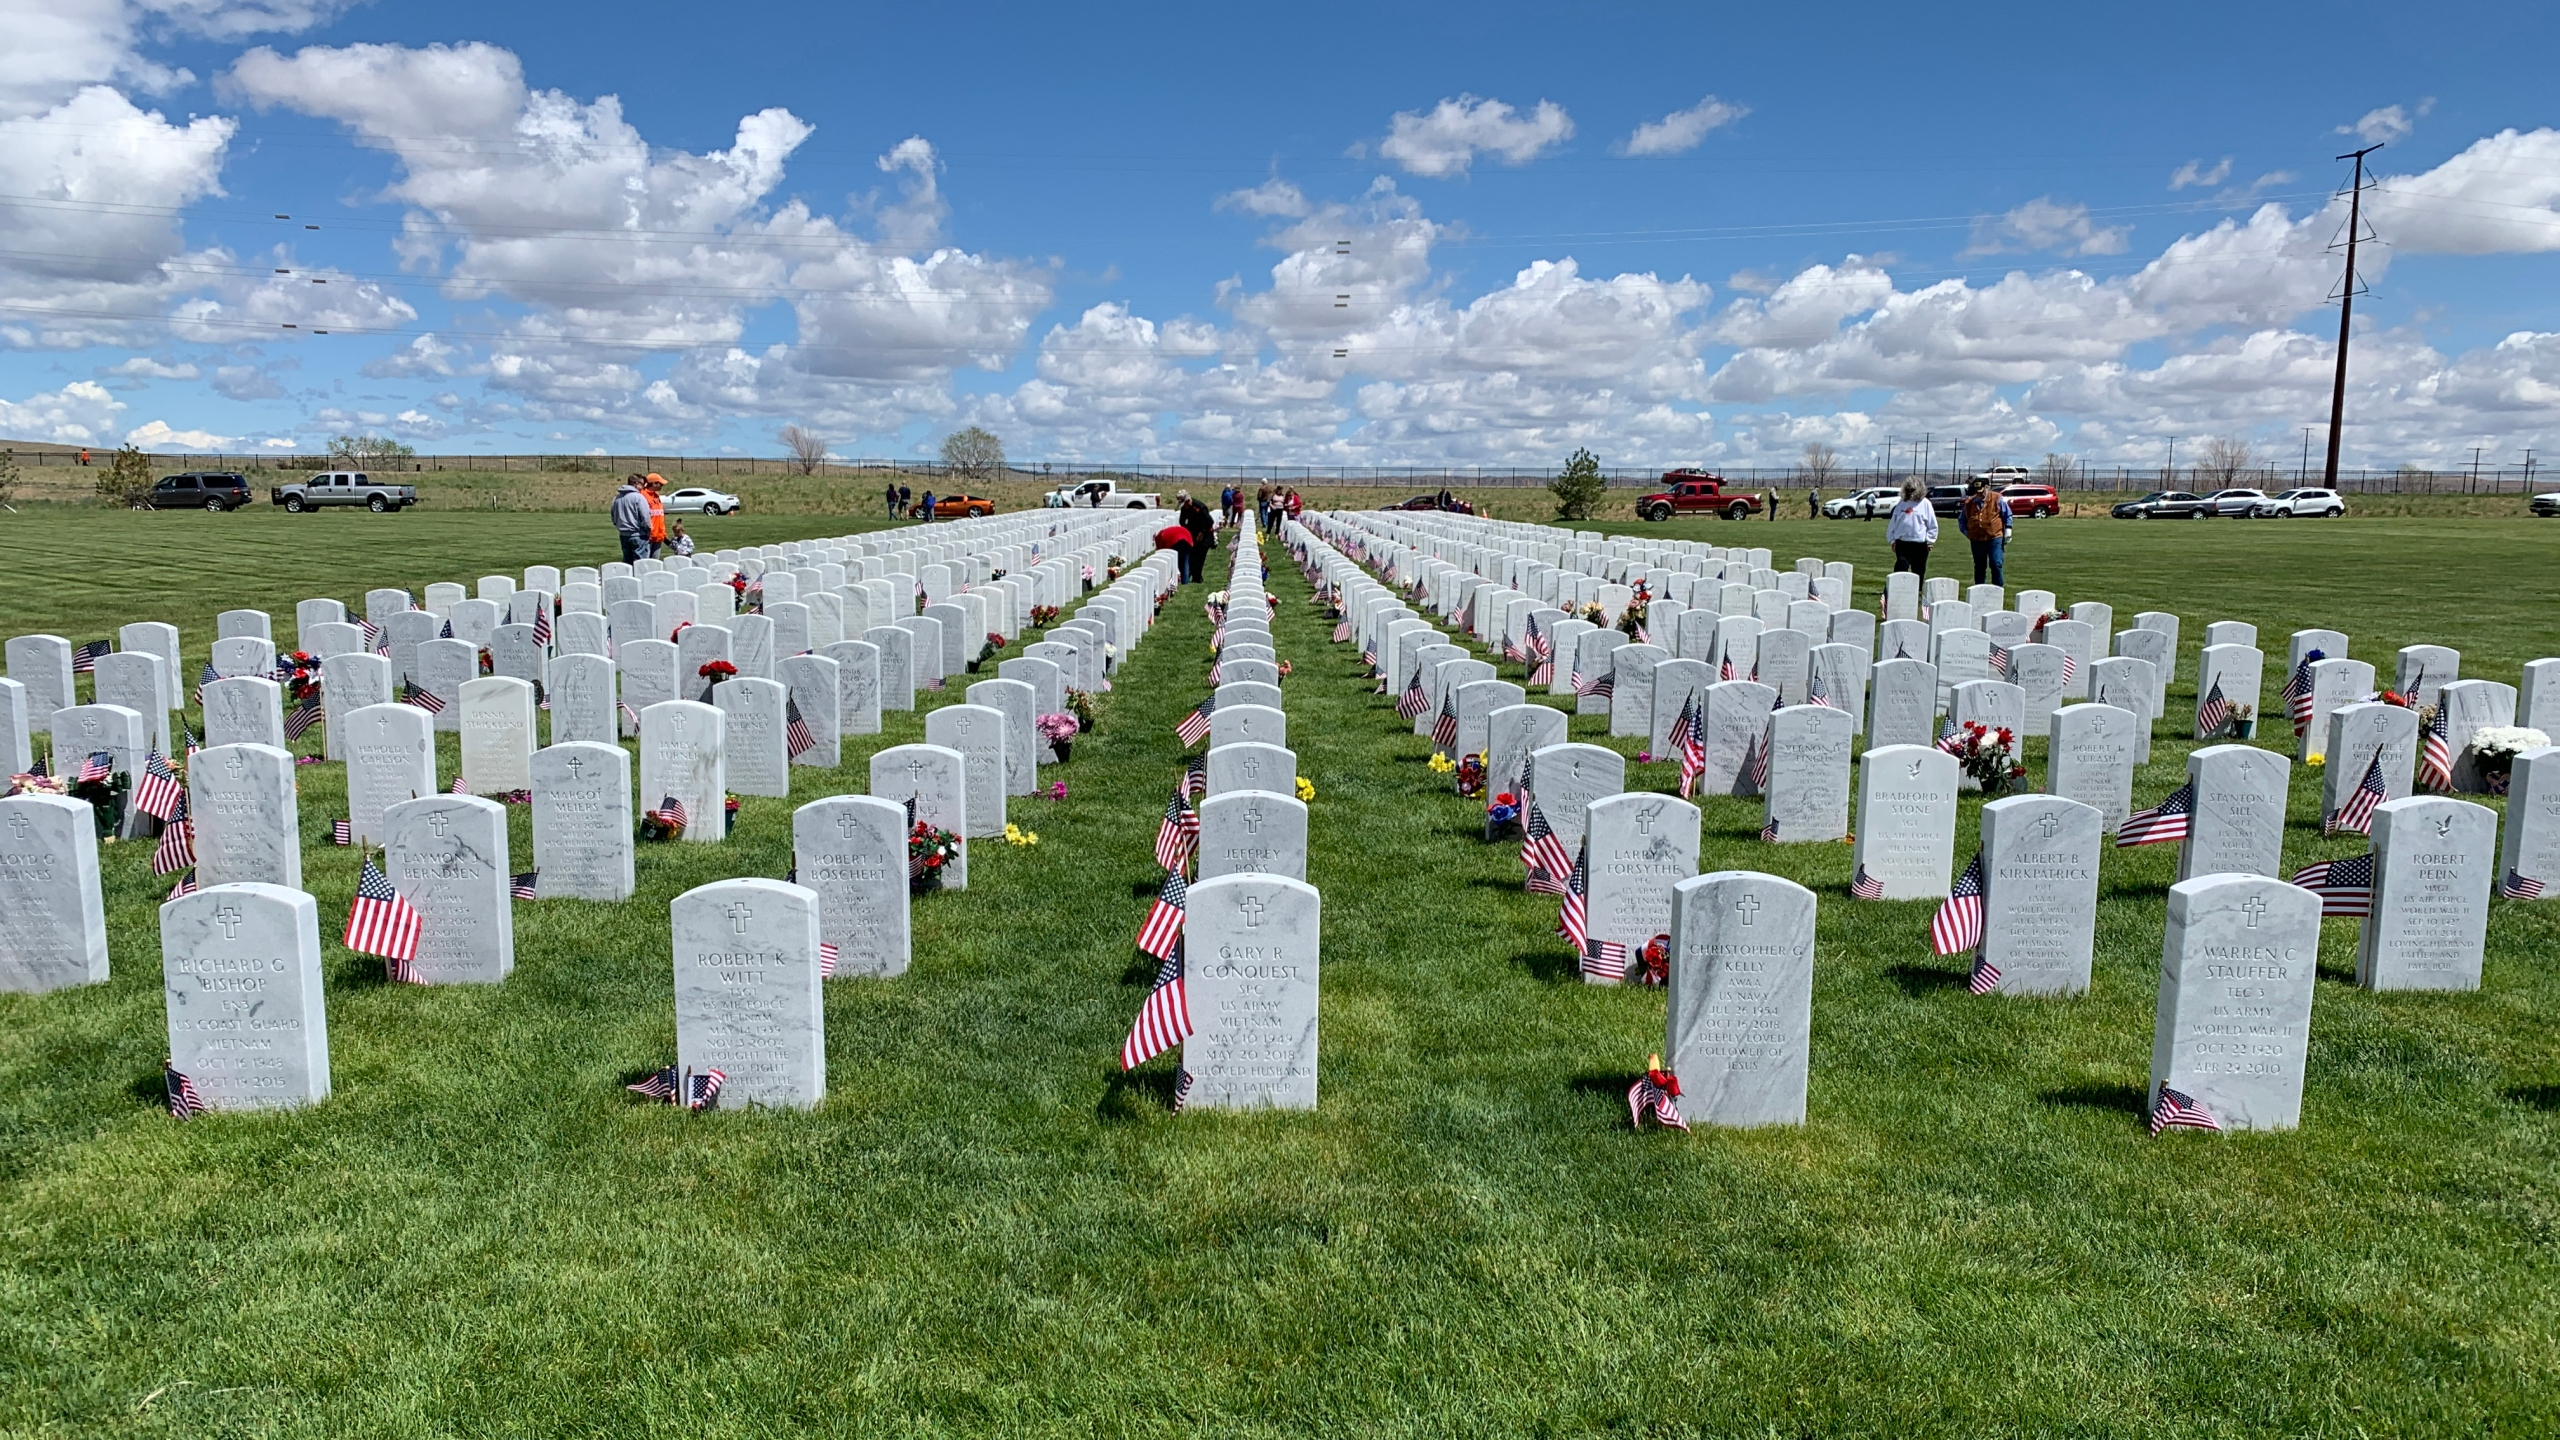 Flags honor veterans buried at the Pikes Peak National Cemetery. / Sarah Hempelmann - FOX21 News